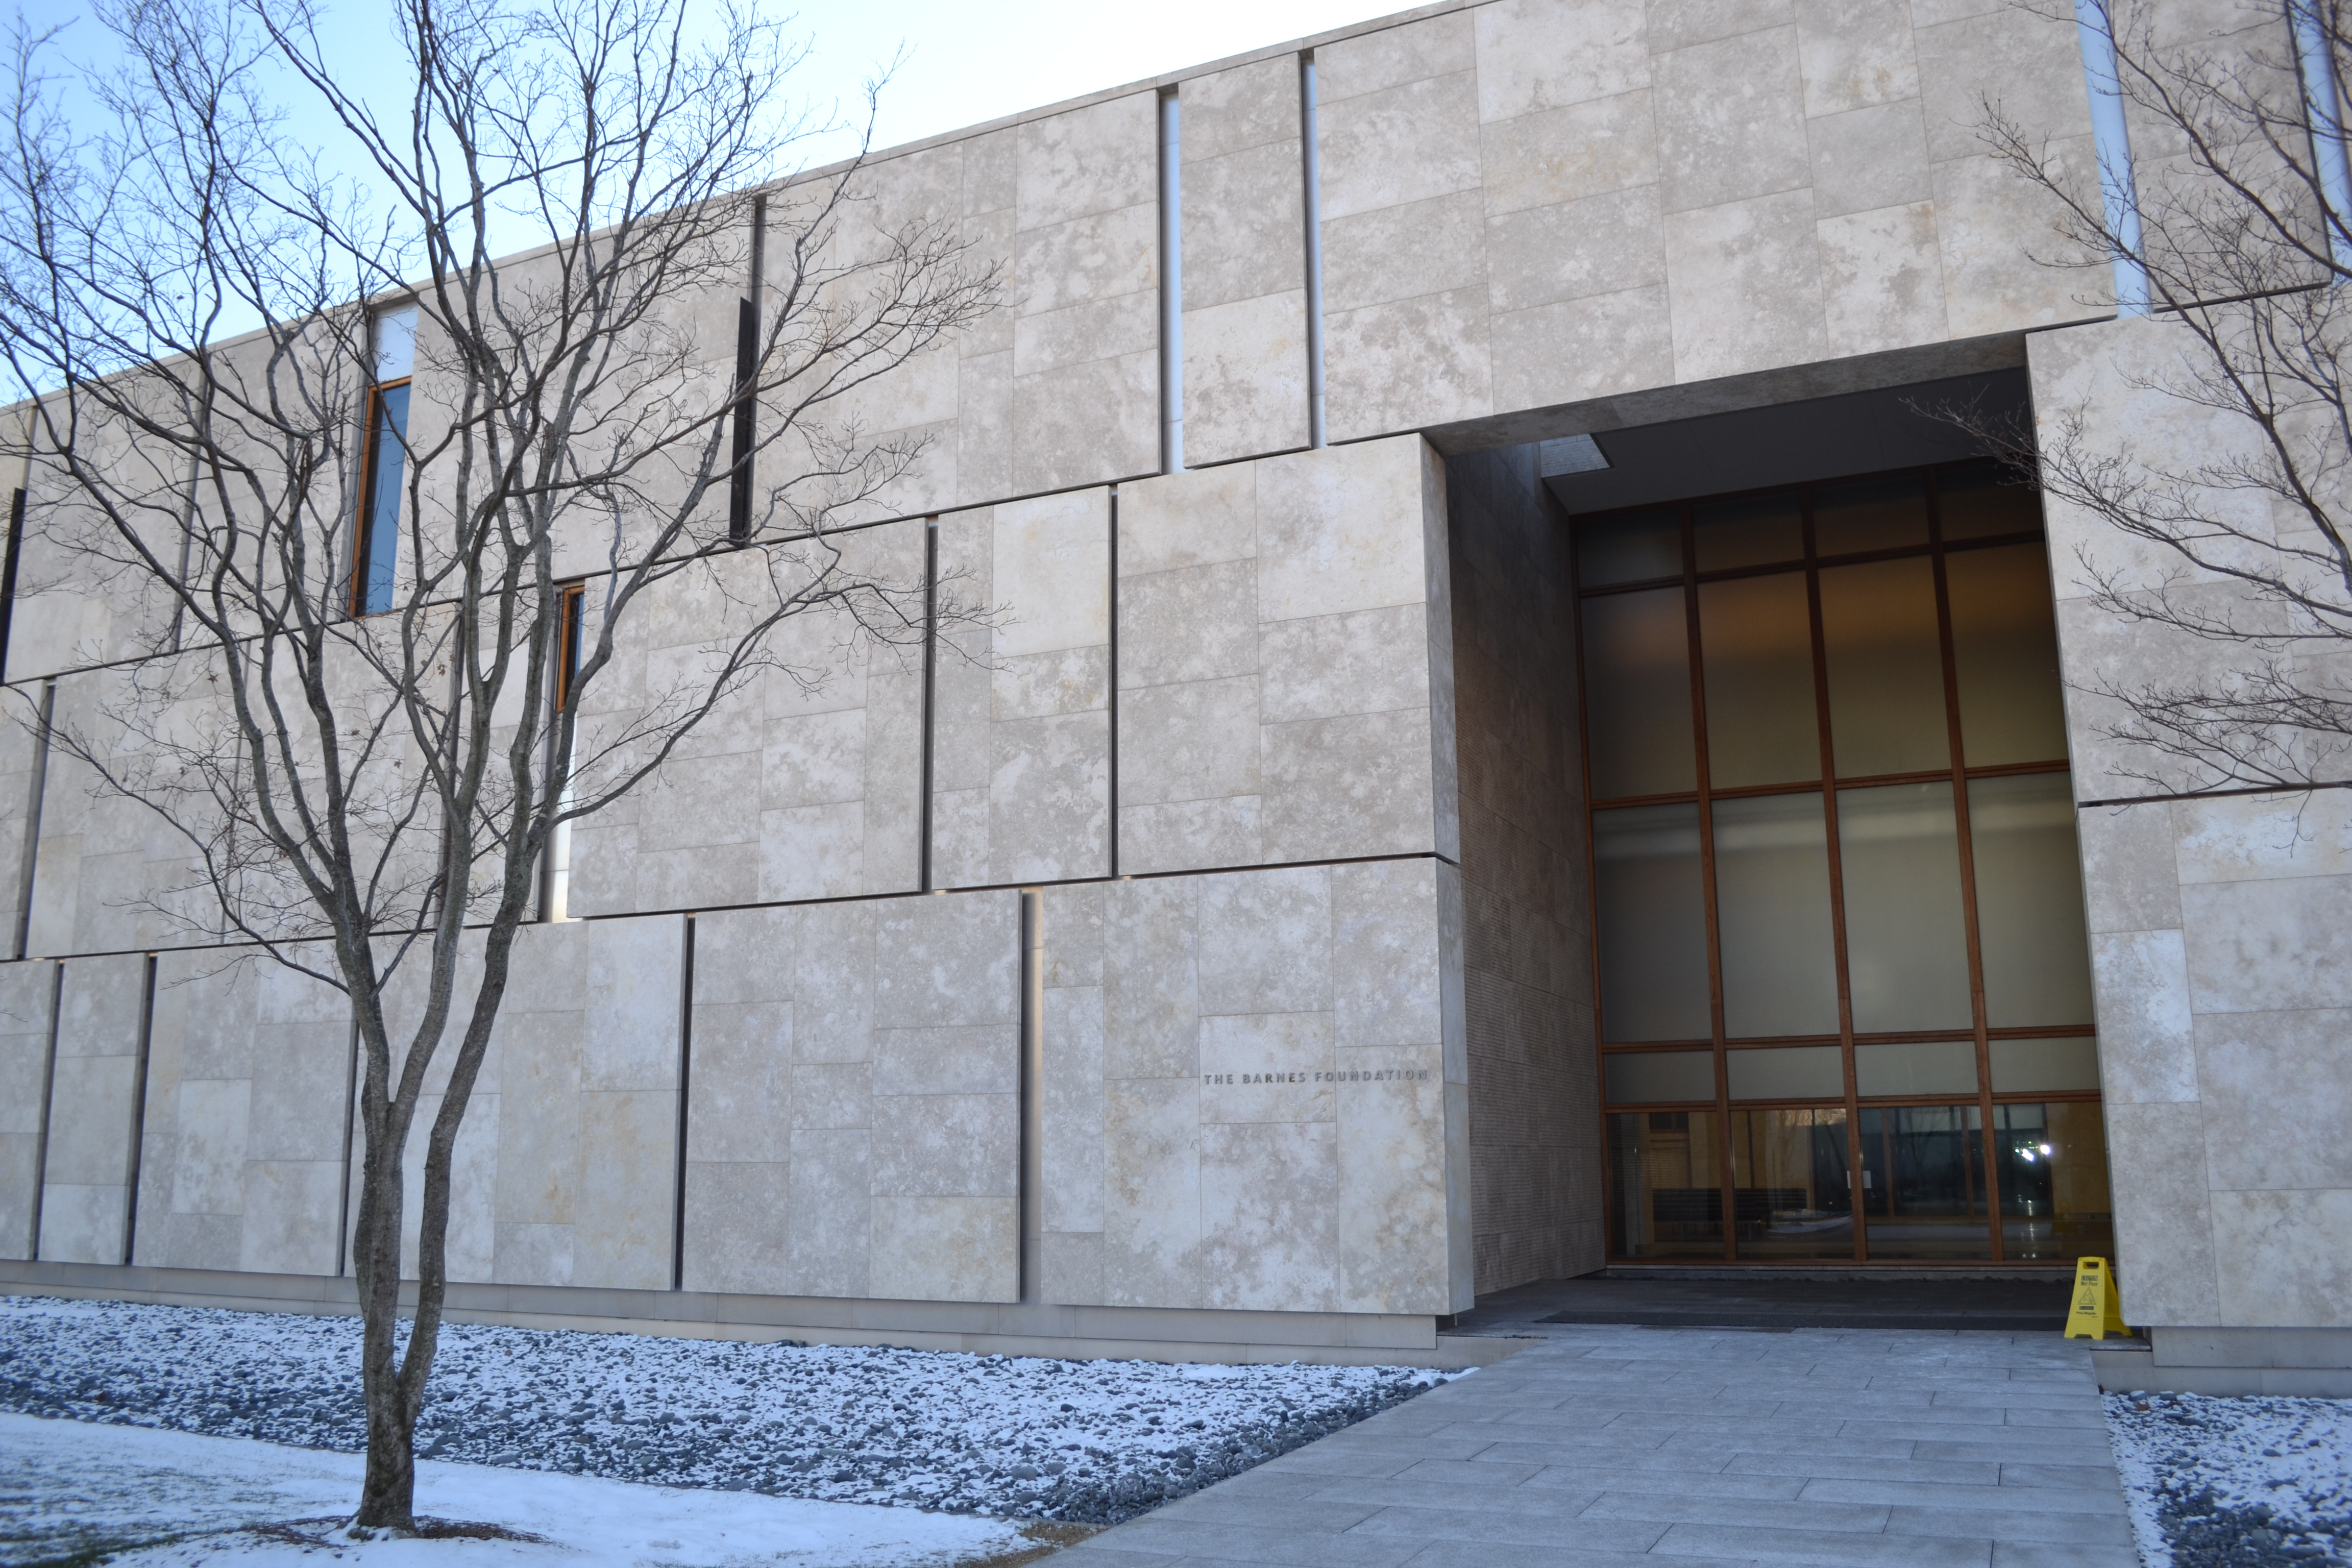 The Entrance to the Barnes Foundation in Philadelphia, PA